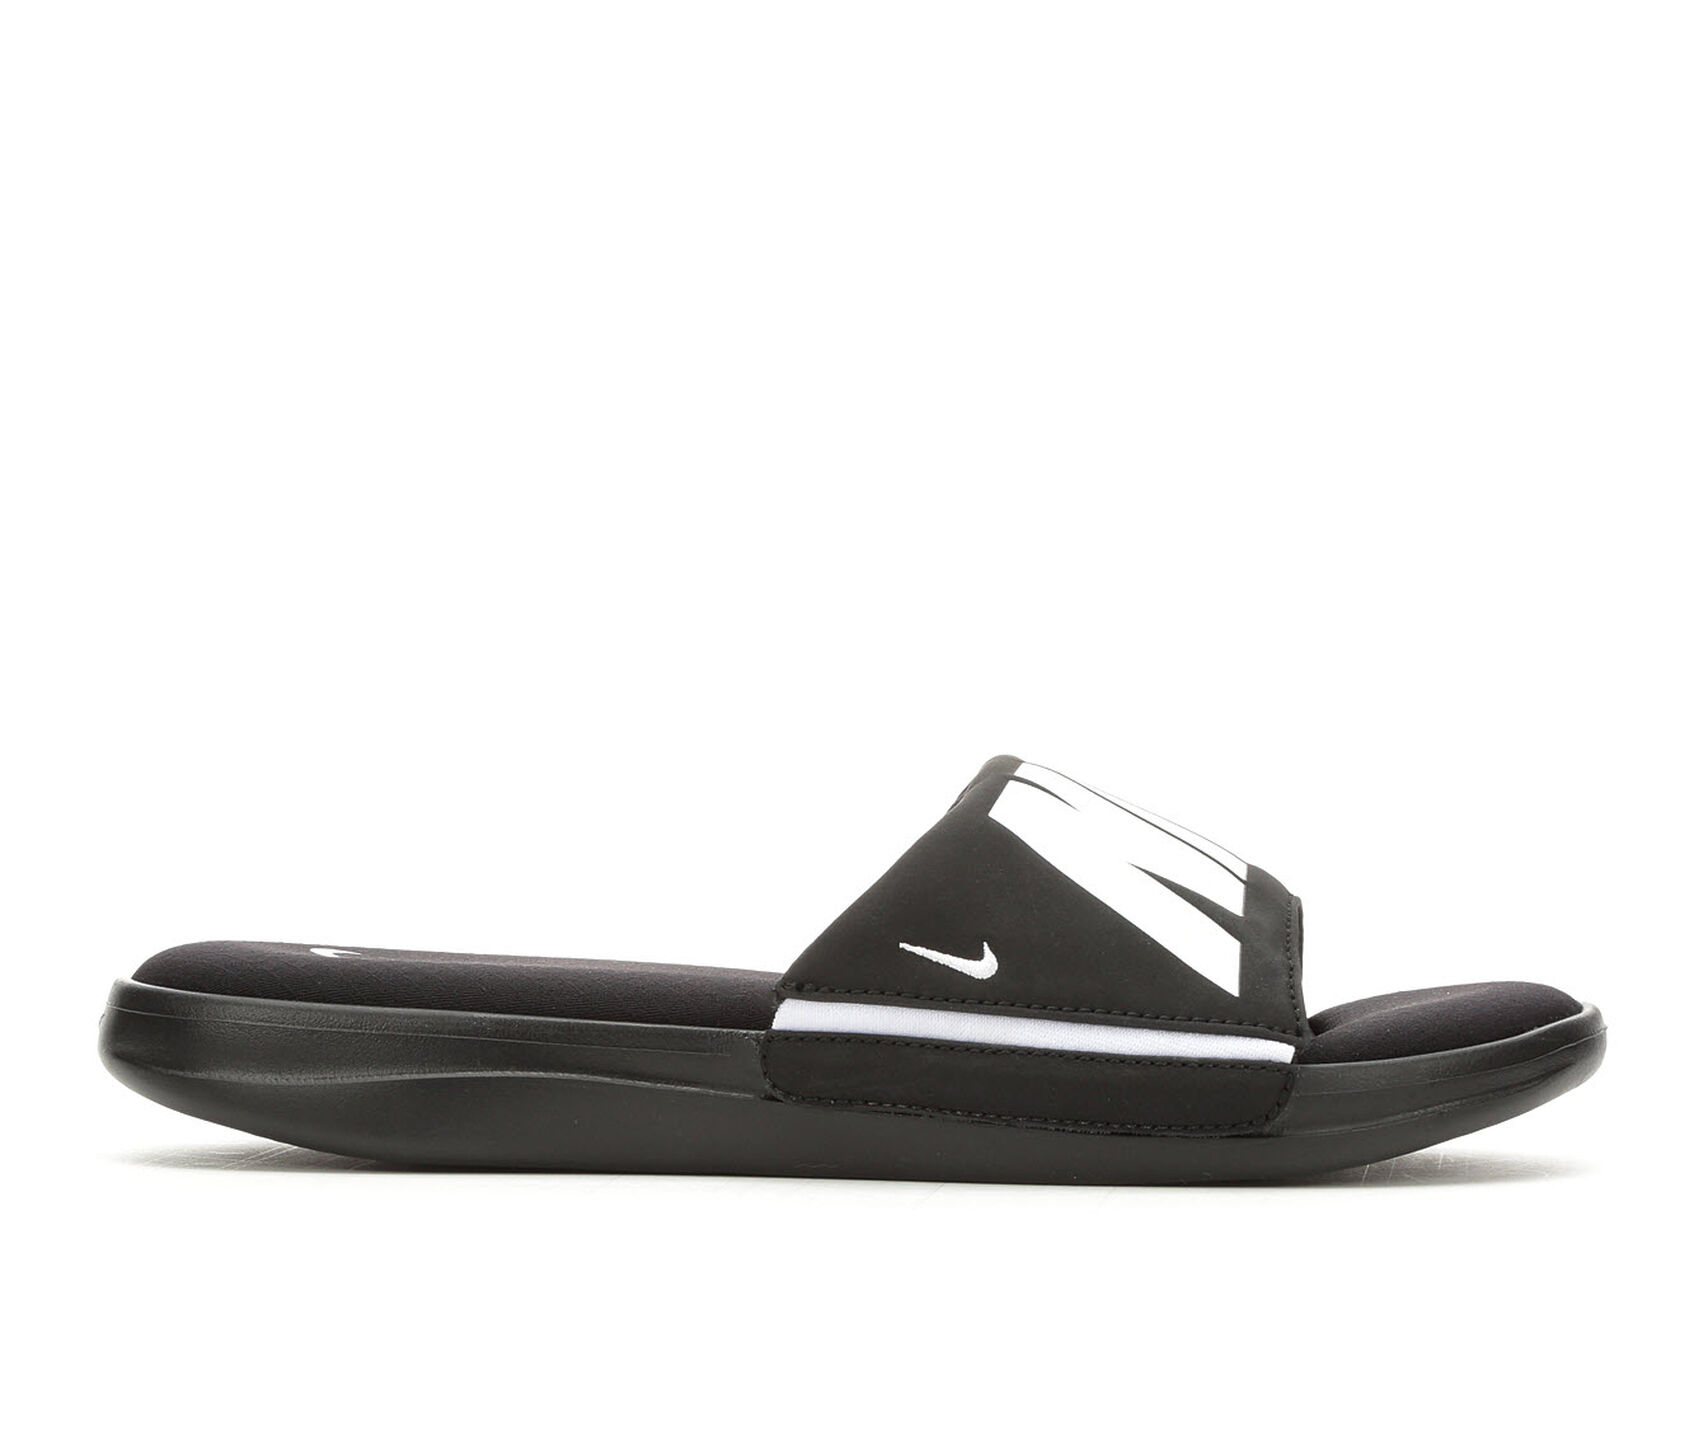 b2b8fd758 ... Nike Ultra Comfort 3 Sport Slides. Previous